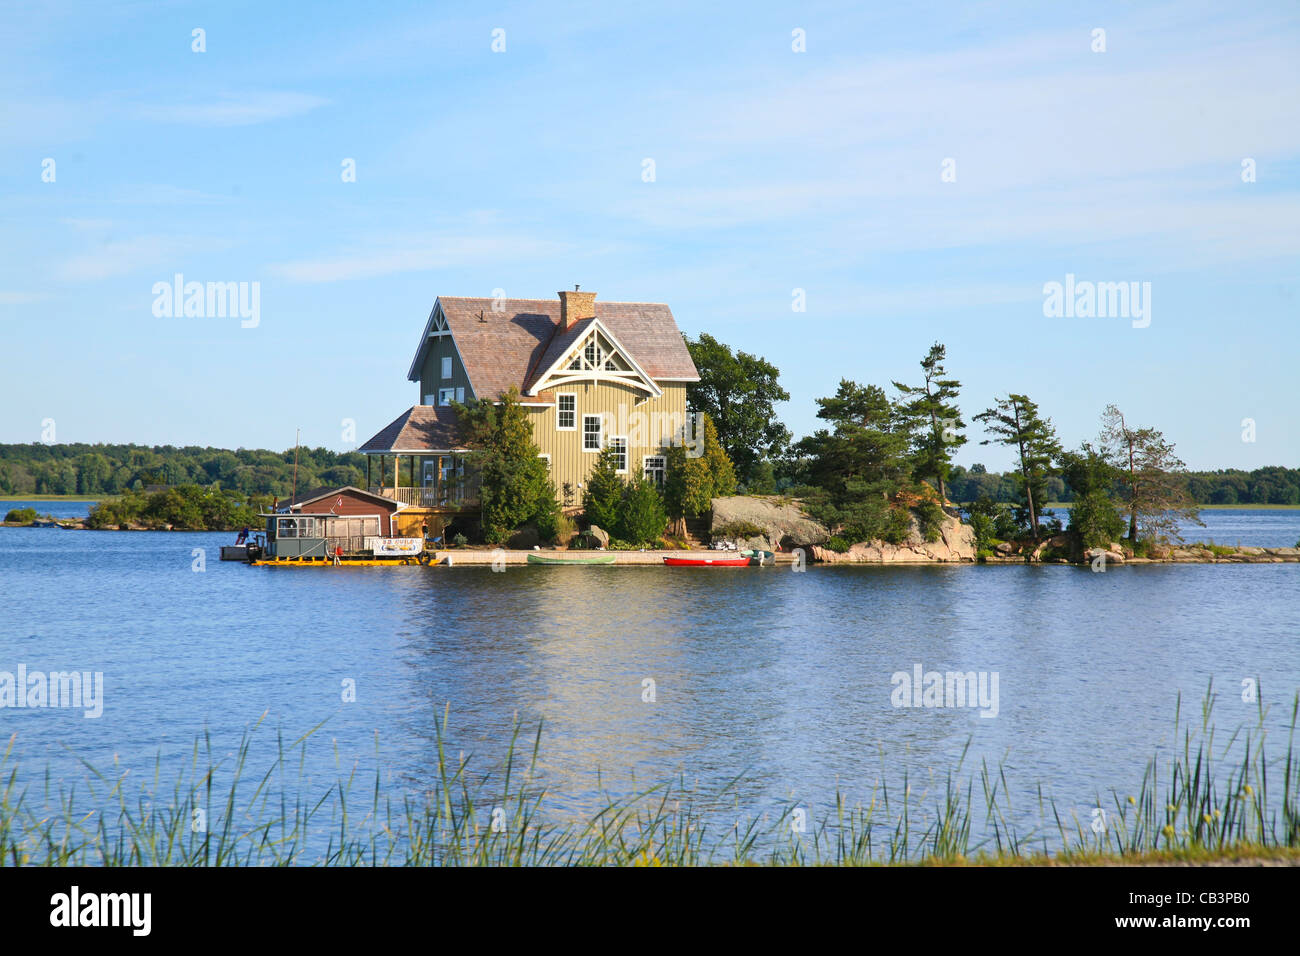 Stock Photo - Weekend Homes;Cottages;Homes;Retreat on isolated remote  Islands in Europe and Canada